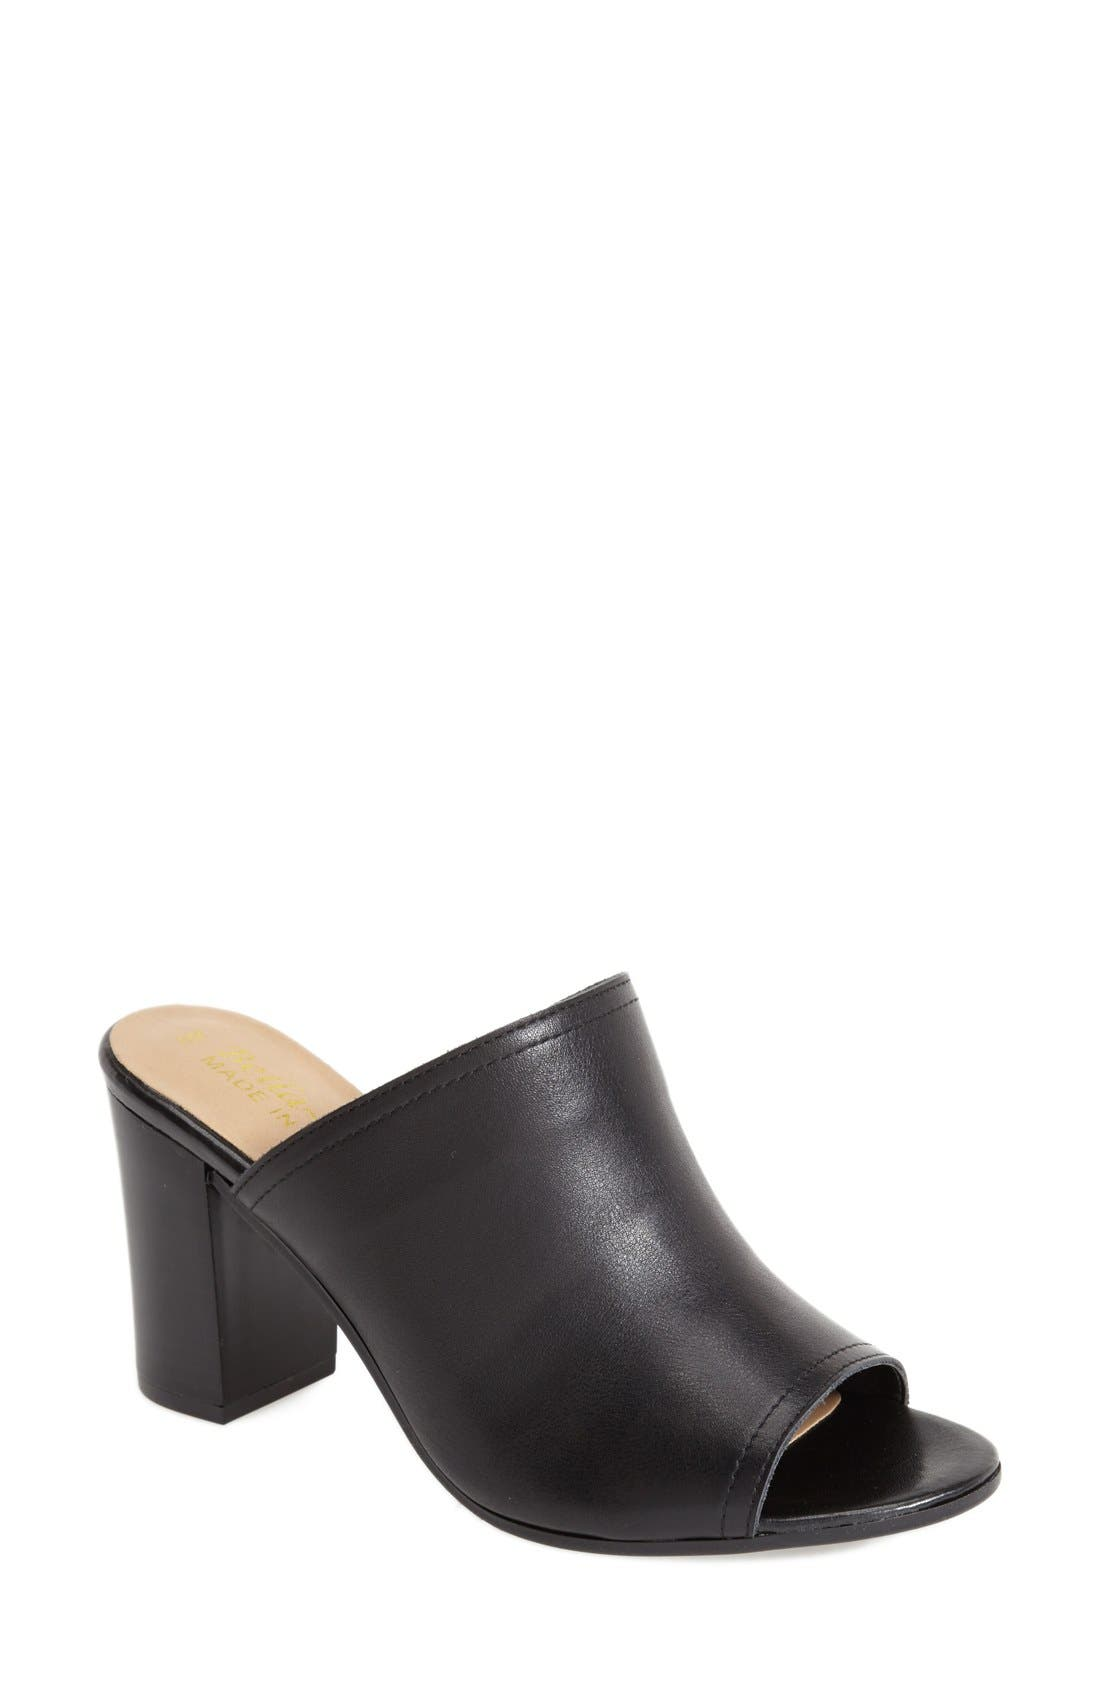 BELLA VITA 'Arno' Leather Mule, Main, color, 001